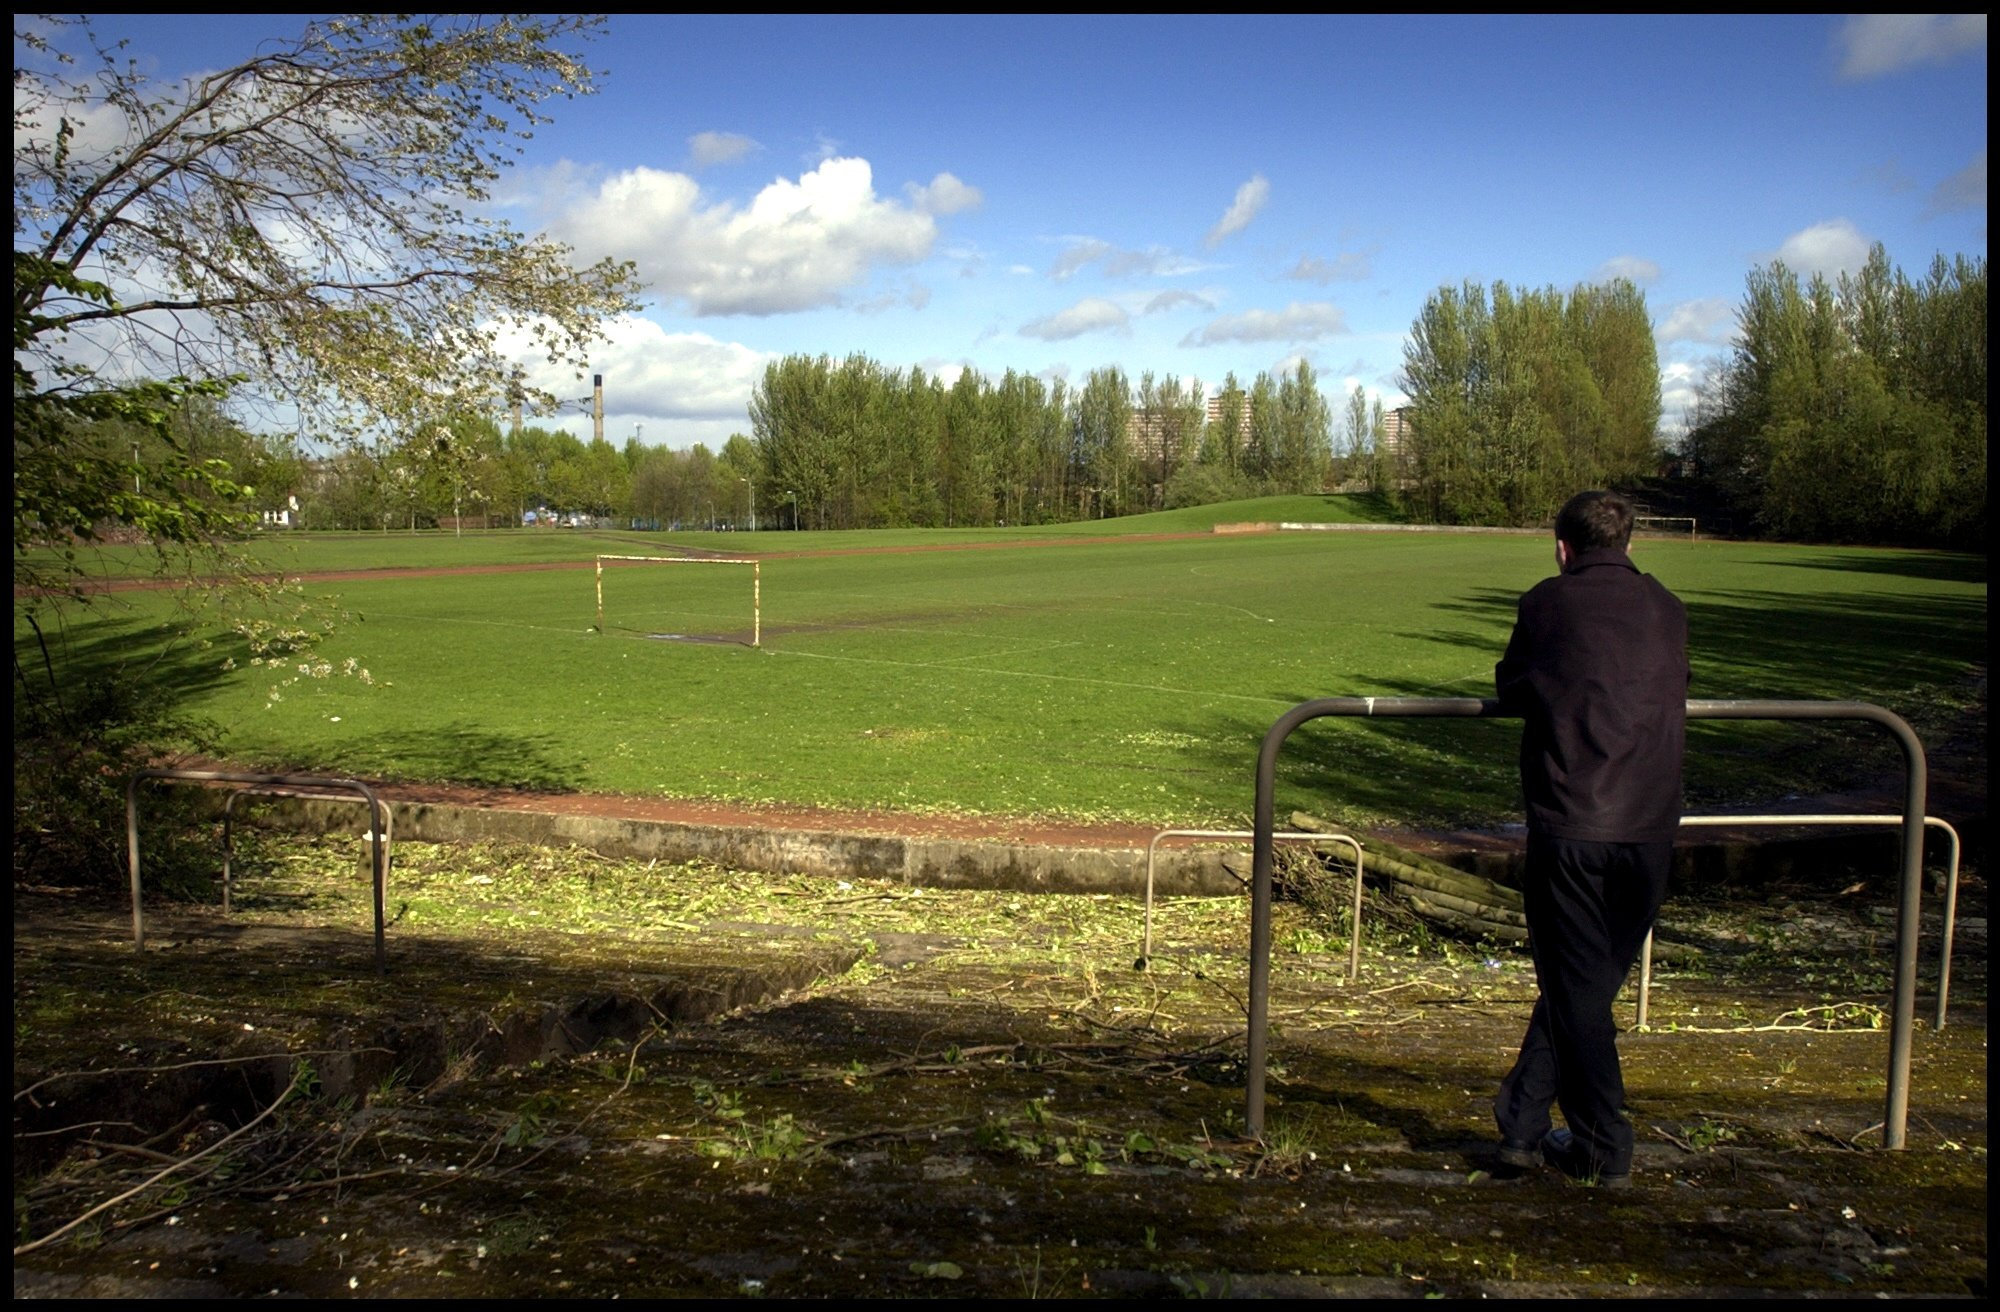 Scotland's clubs warned they could go bust - and need emergency funding to survive shutdown